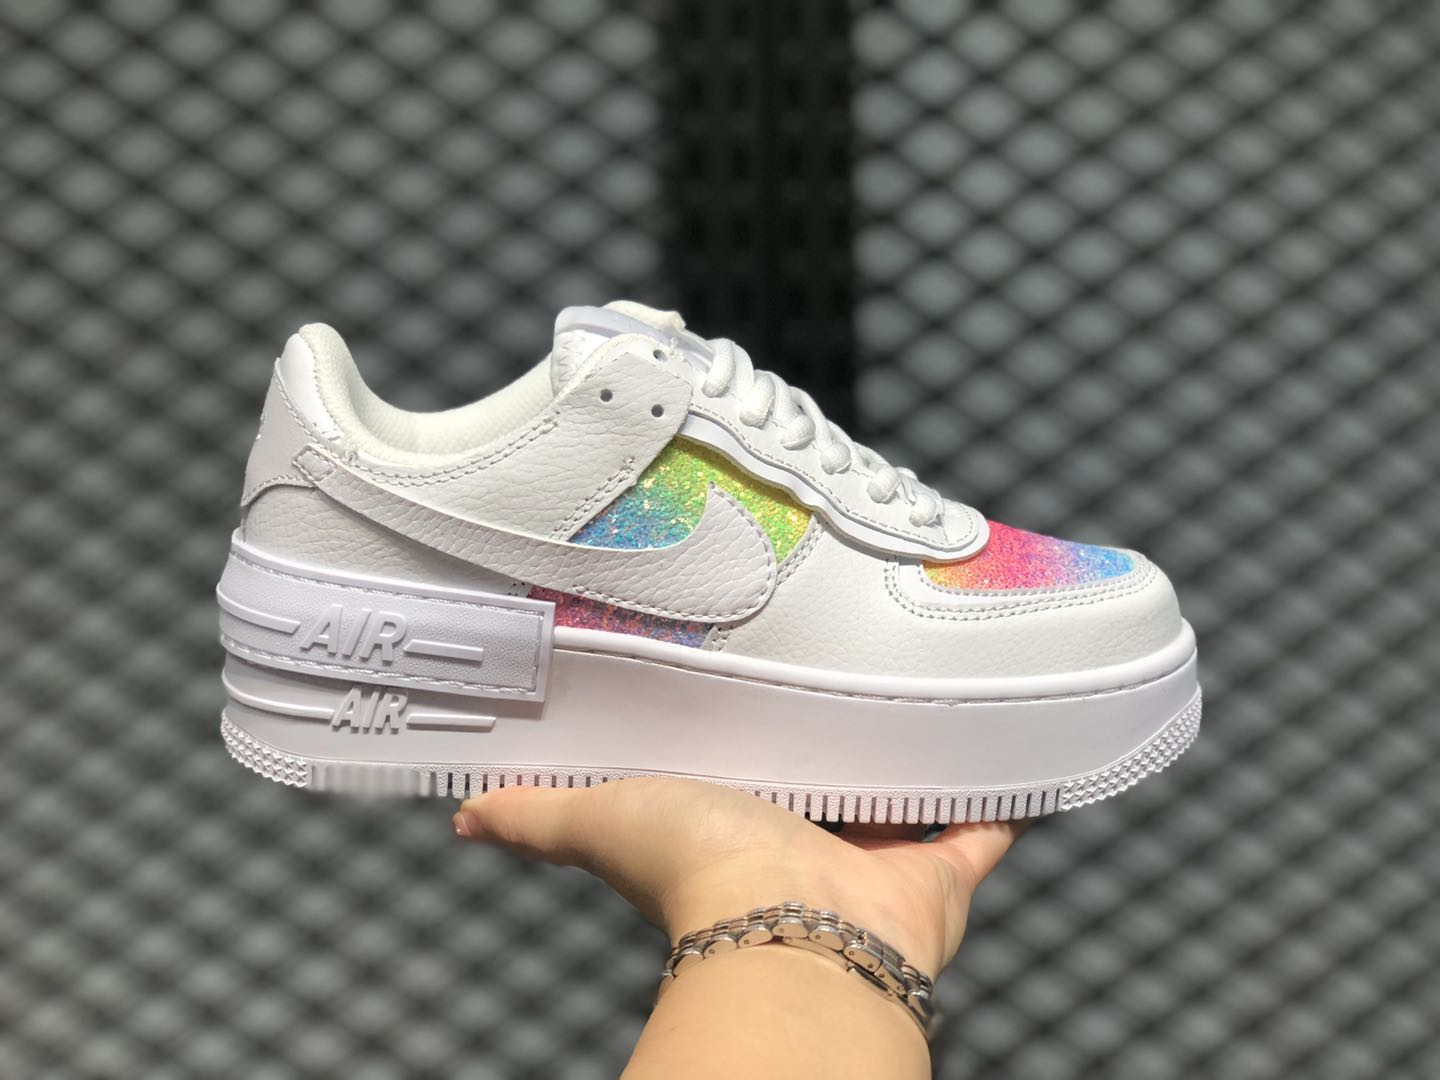 New Sale Nike Air Force 1 Low White/Barely Volt-Hyper Blue | Essensium